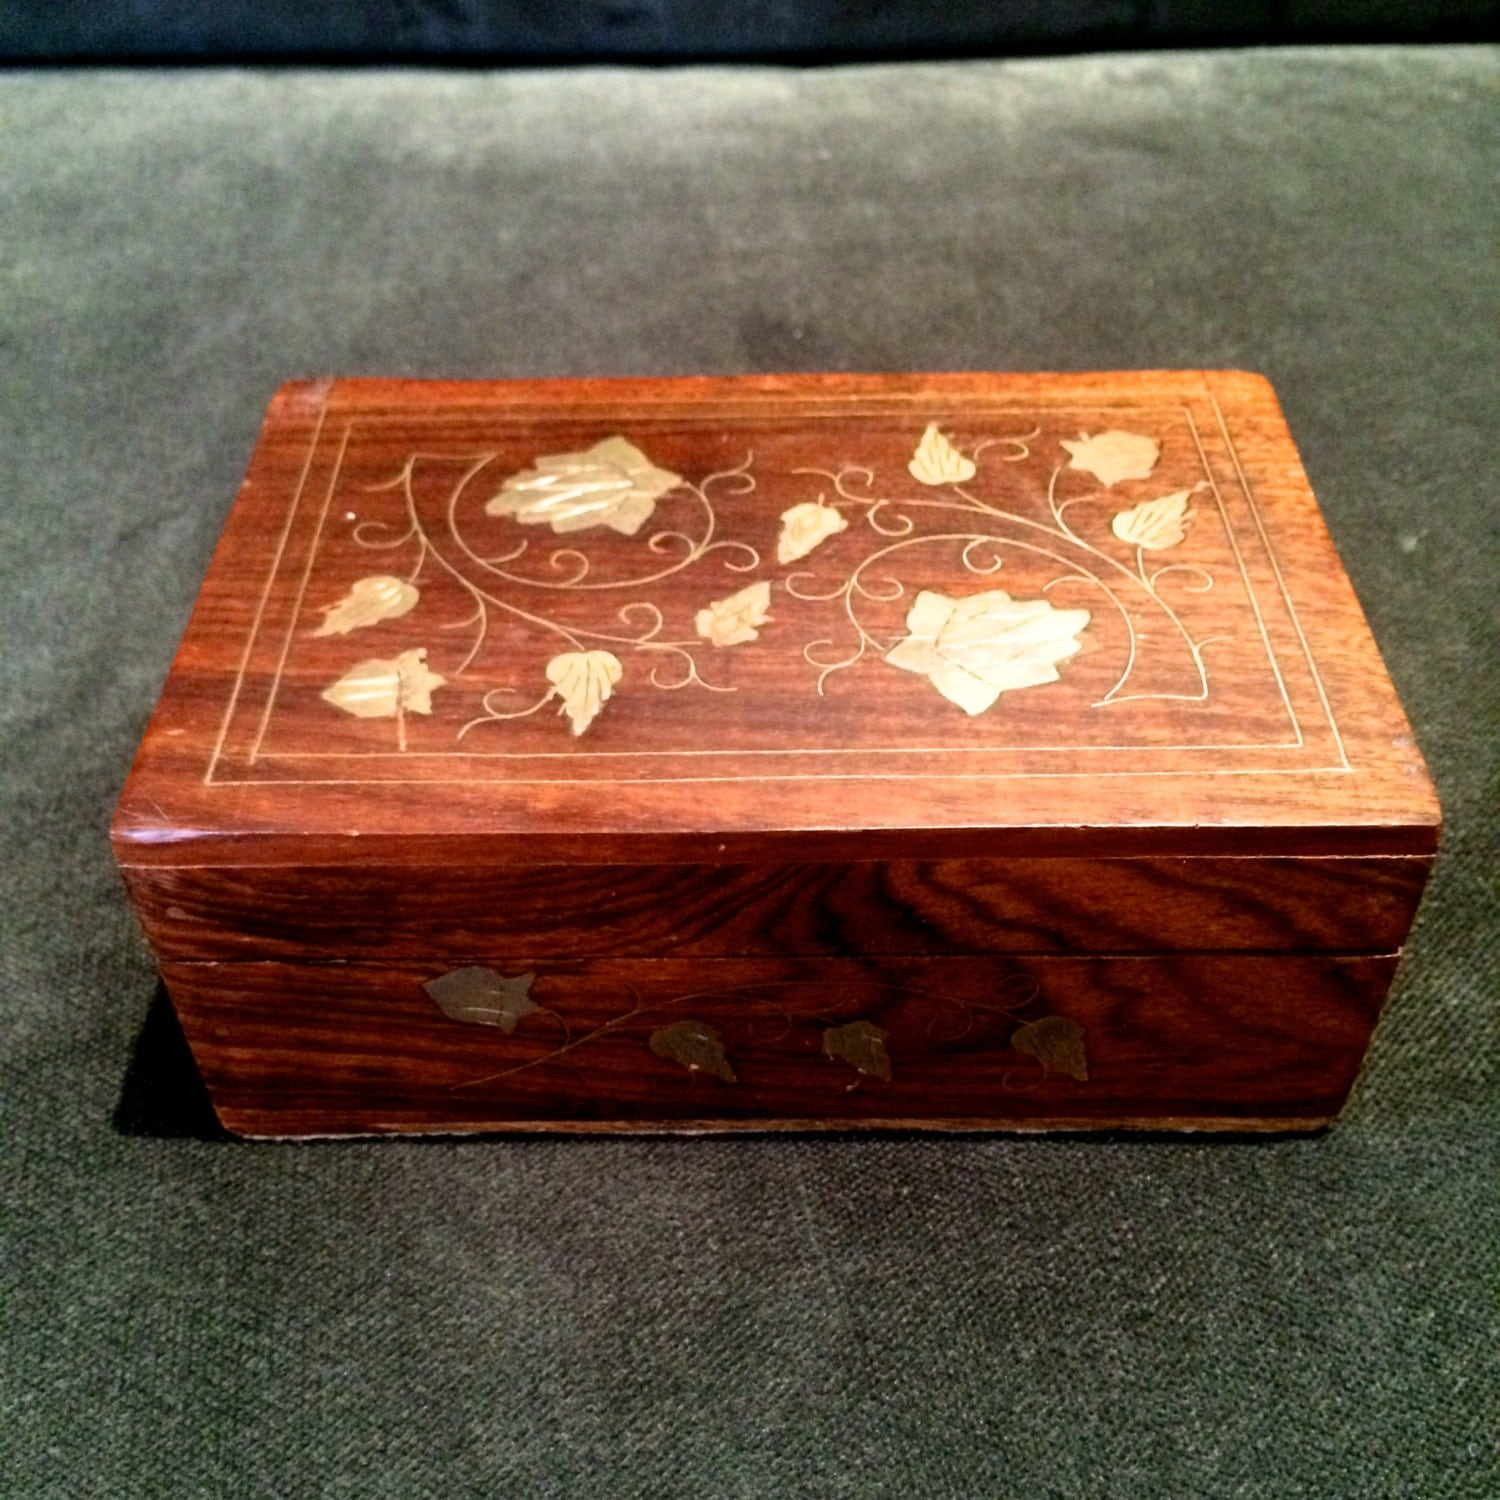 Small Decorative Jewelry Boxes : Wood box brass inlaid design decorative small wooden